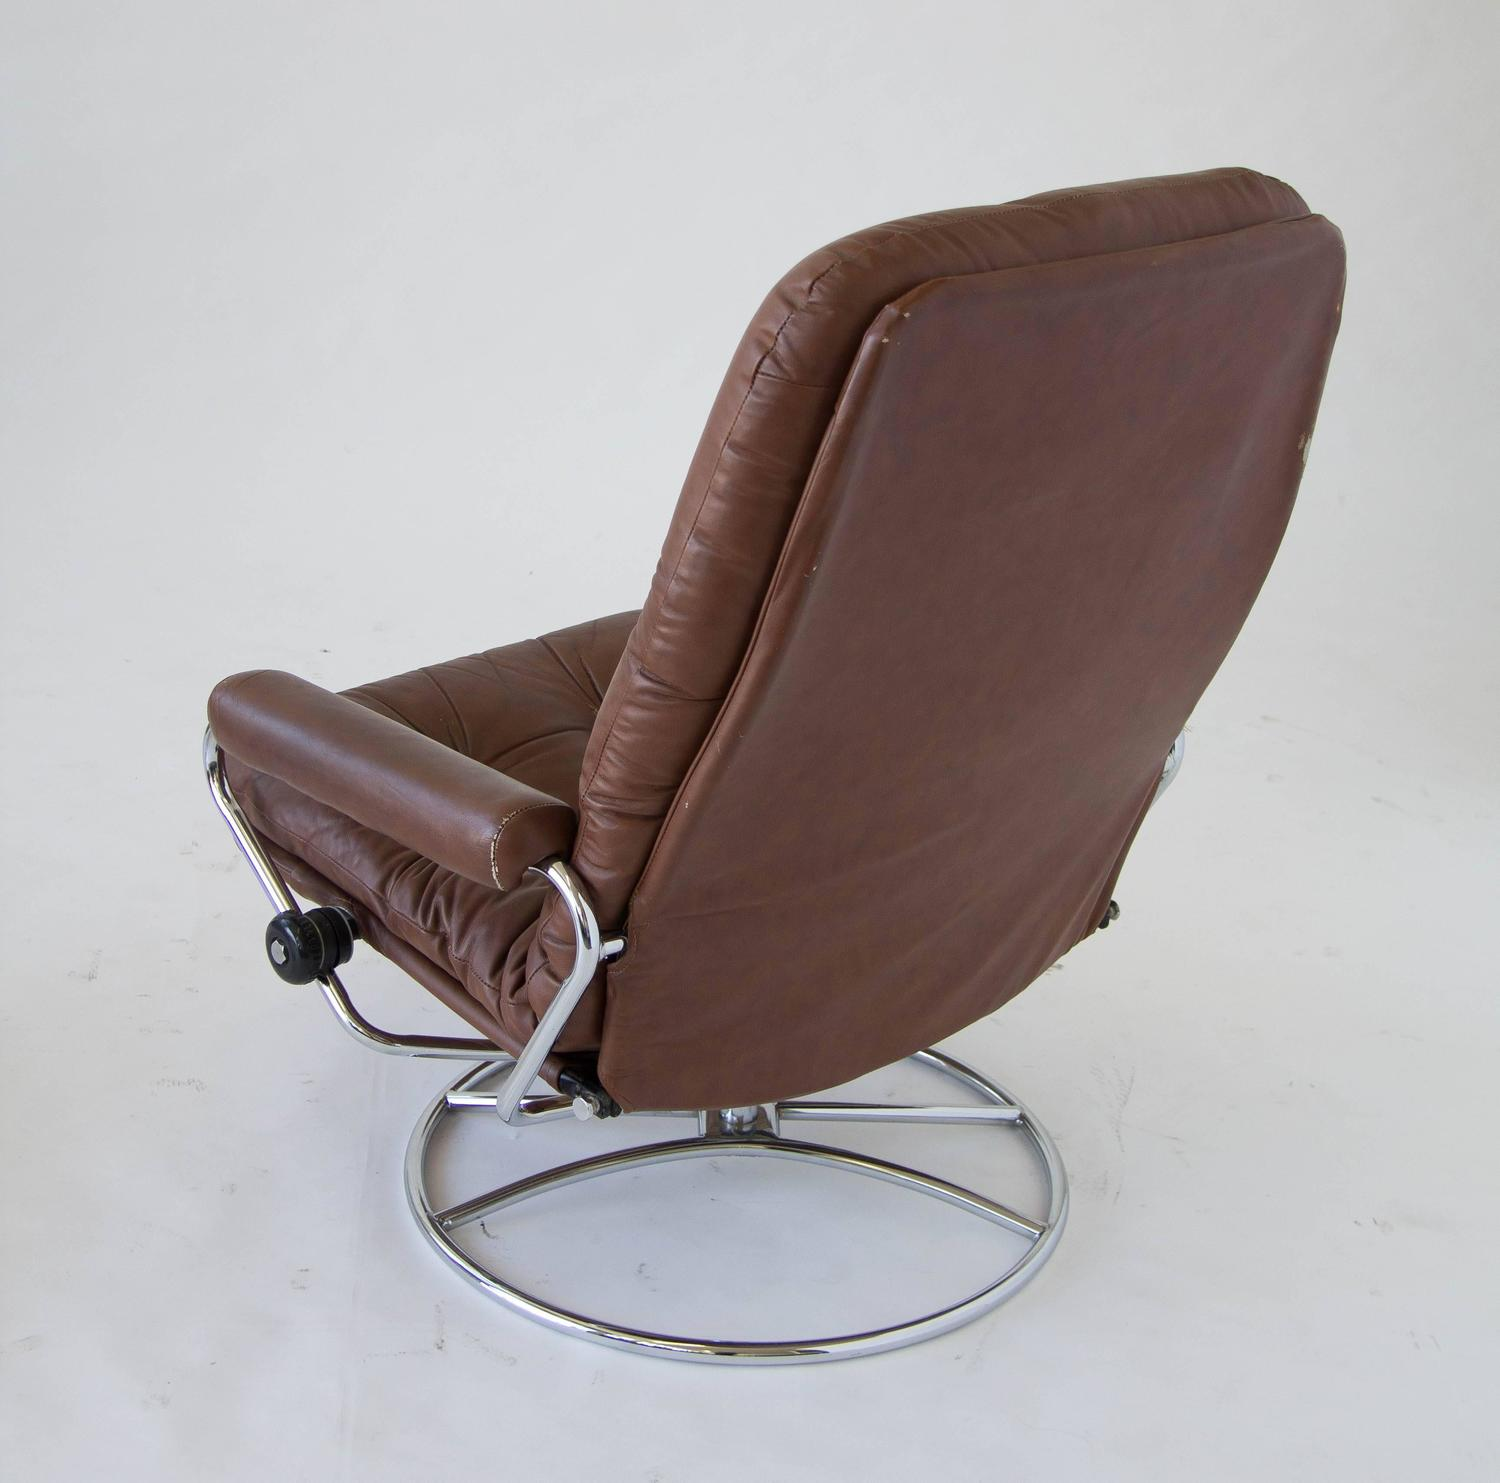 stressless chair sale folding lawn chairs ekornes and ottoman for at 1stdibs